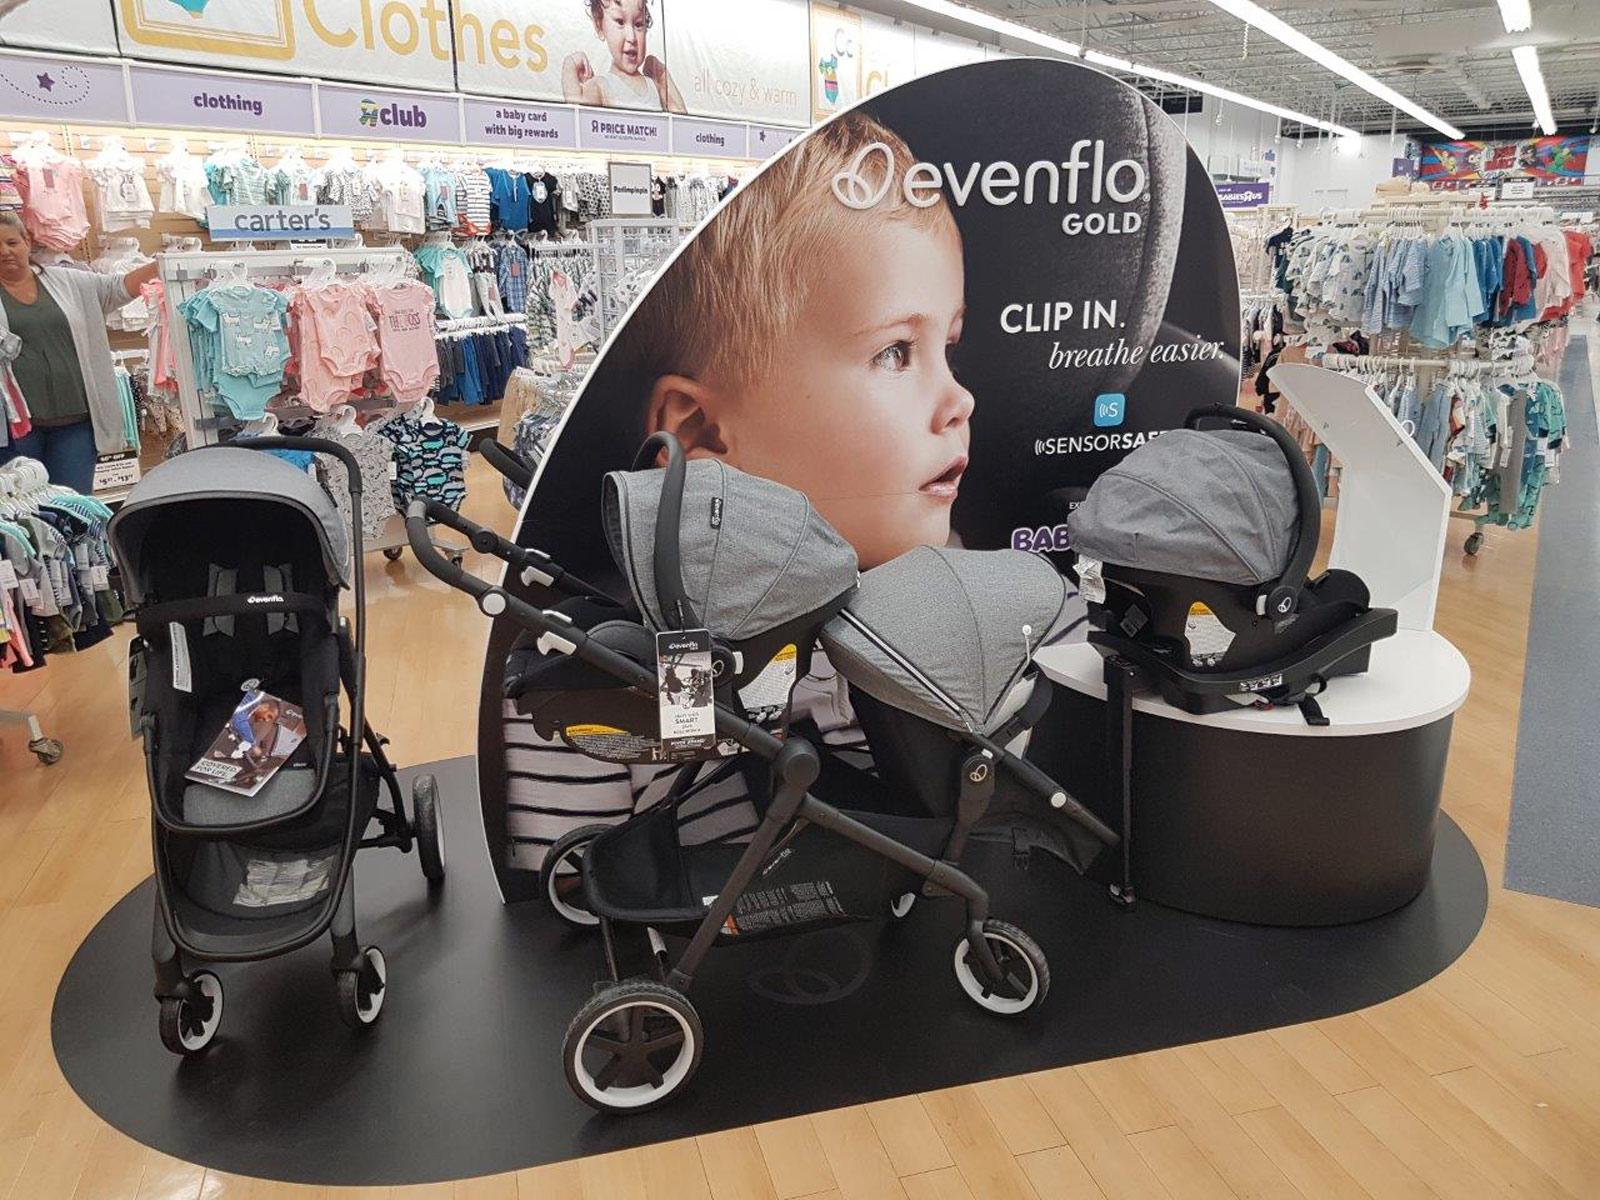 Evenflo Gold Retail Display Babies-R-Us Canada